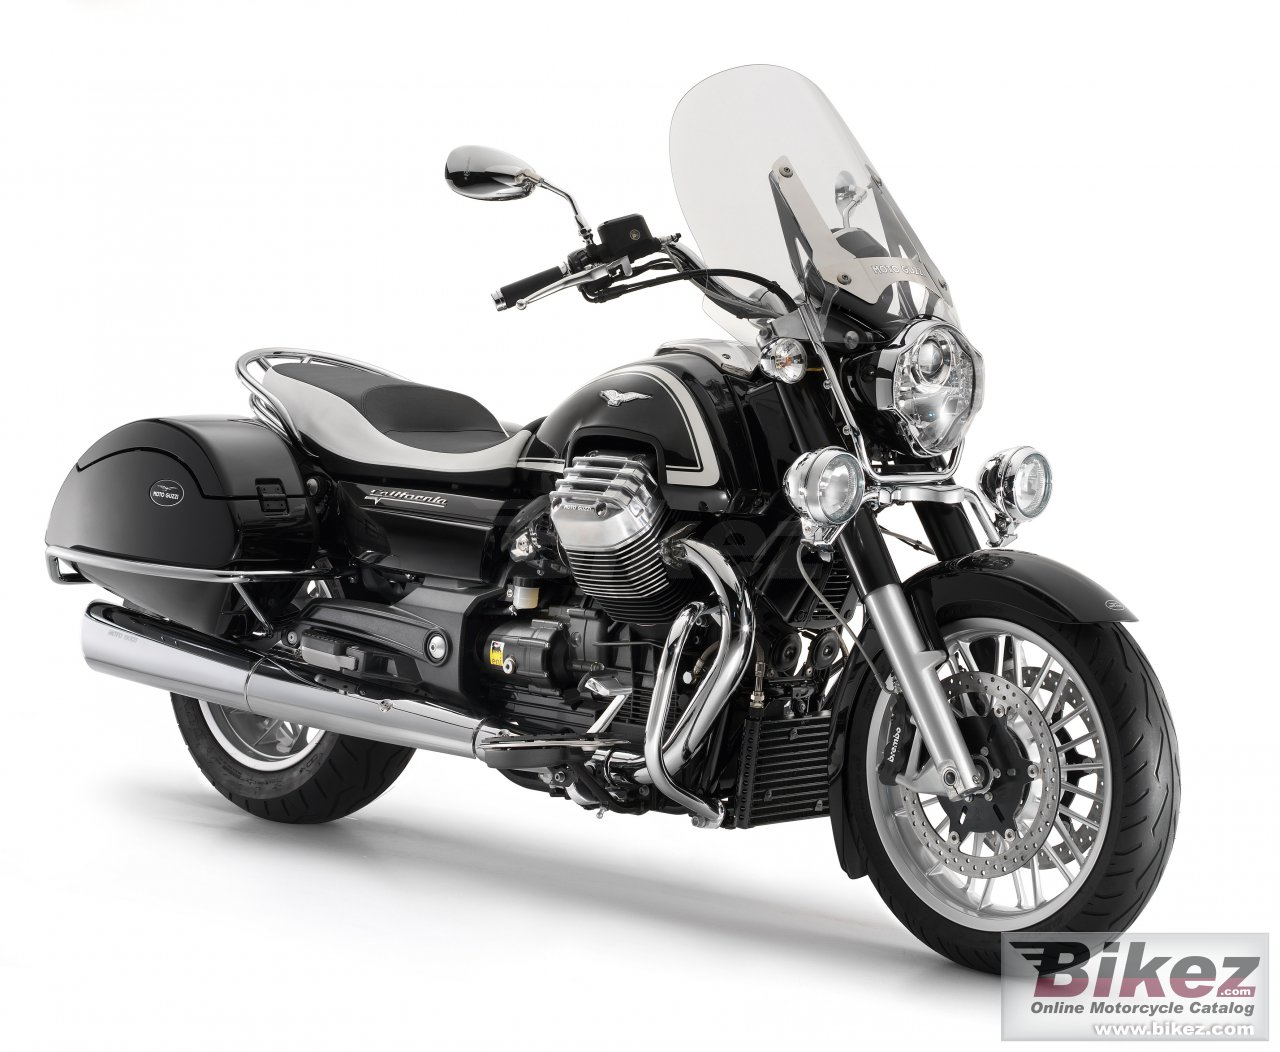 Big Moto Guzzi california 1400 touring picture and wallpaper from Bikez.com